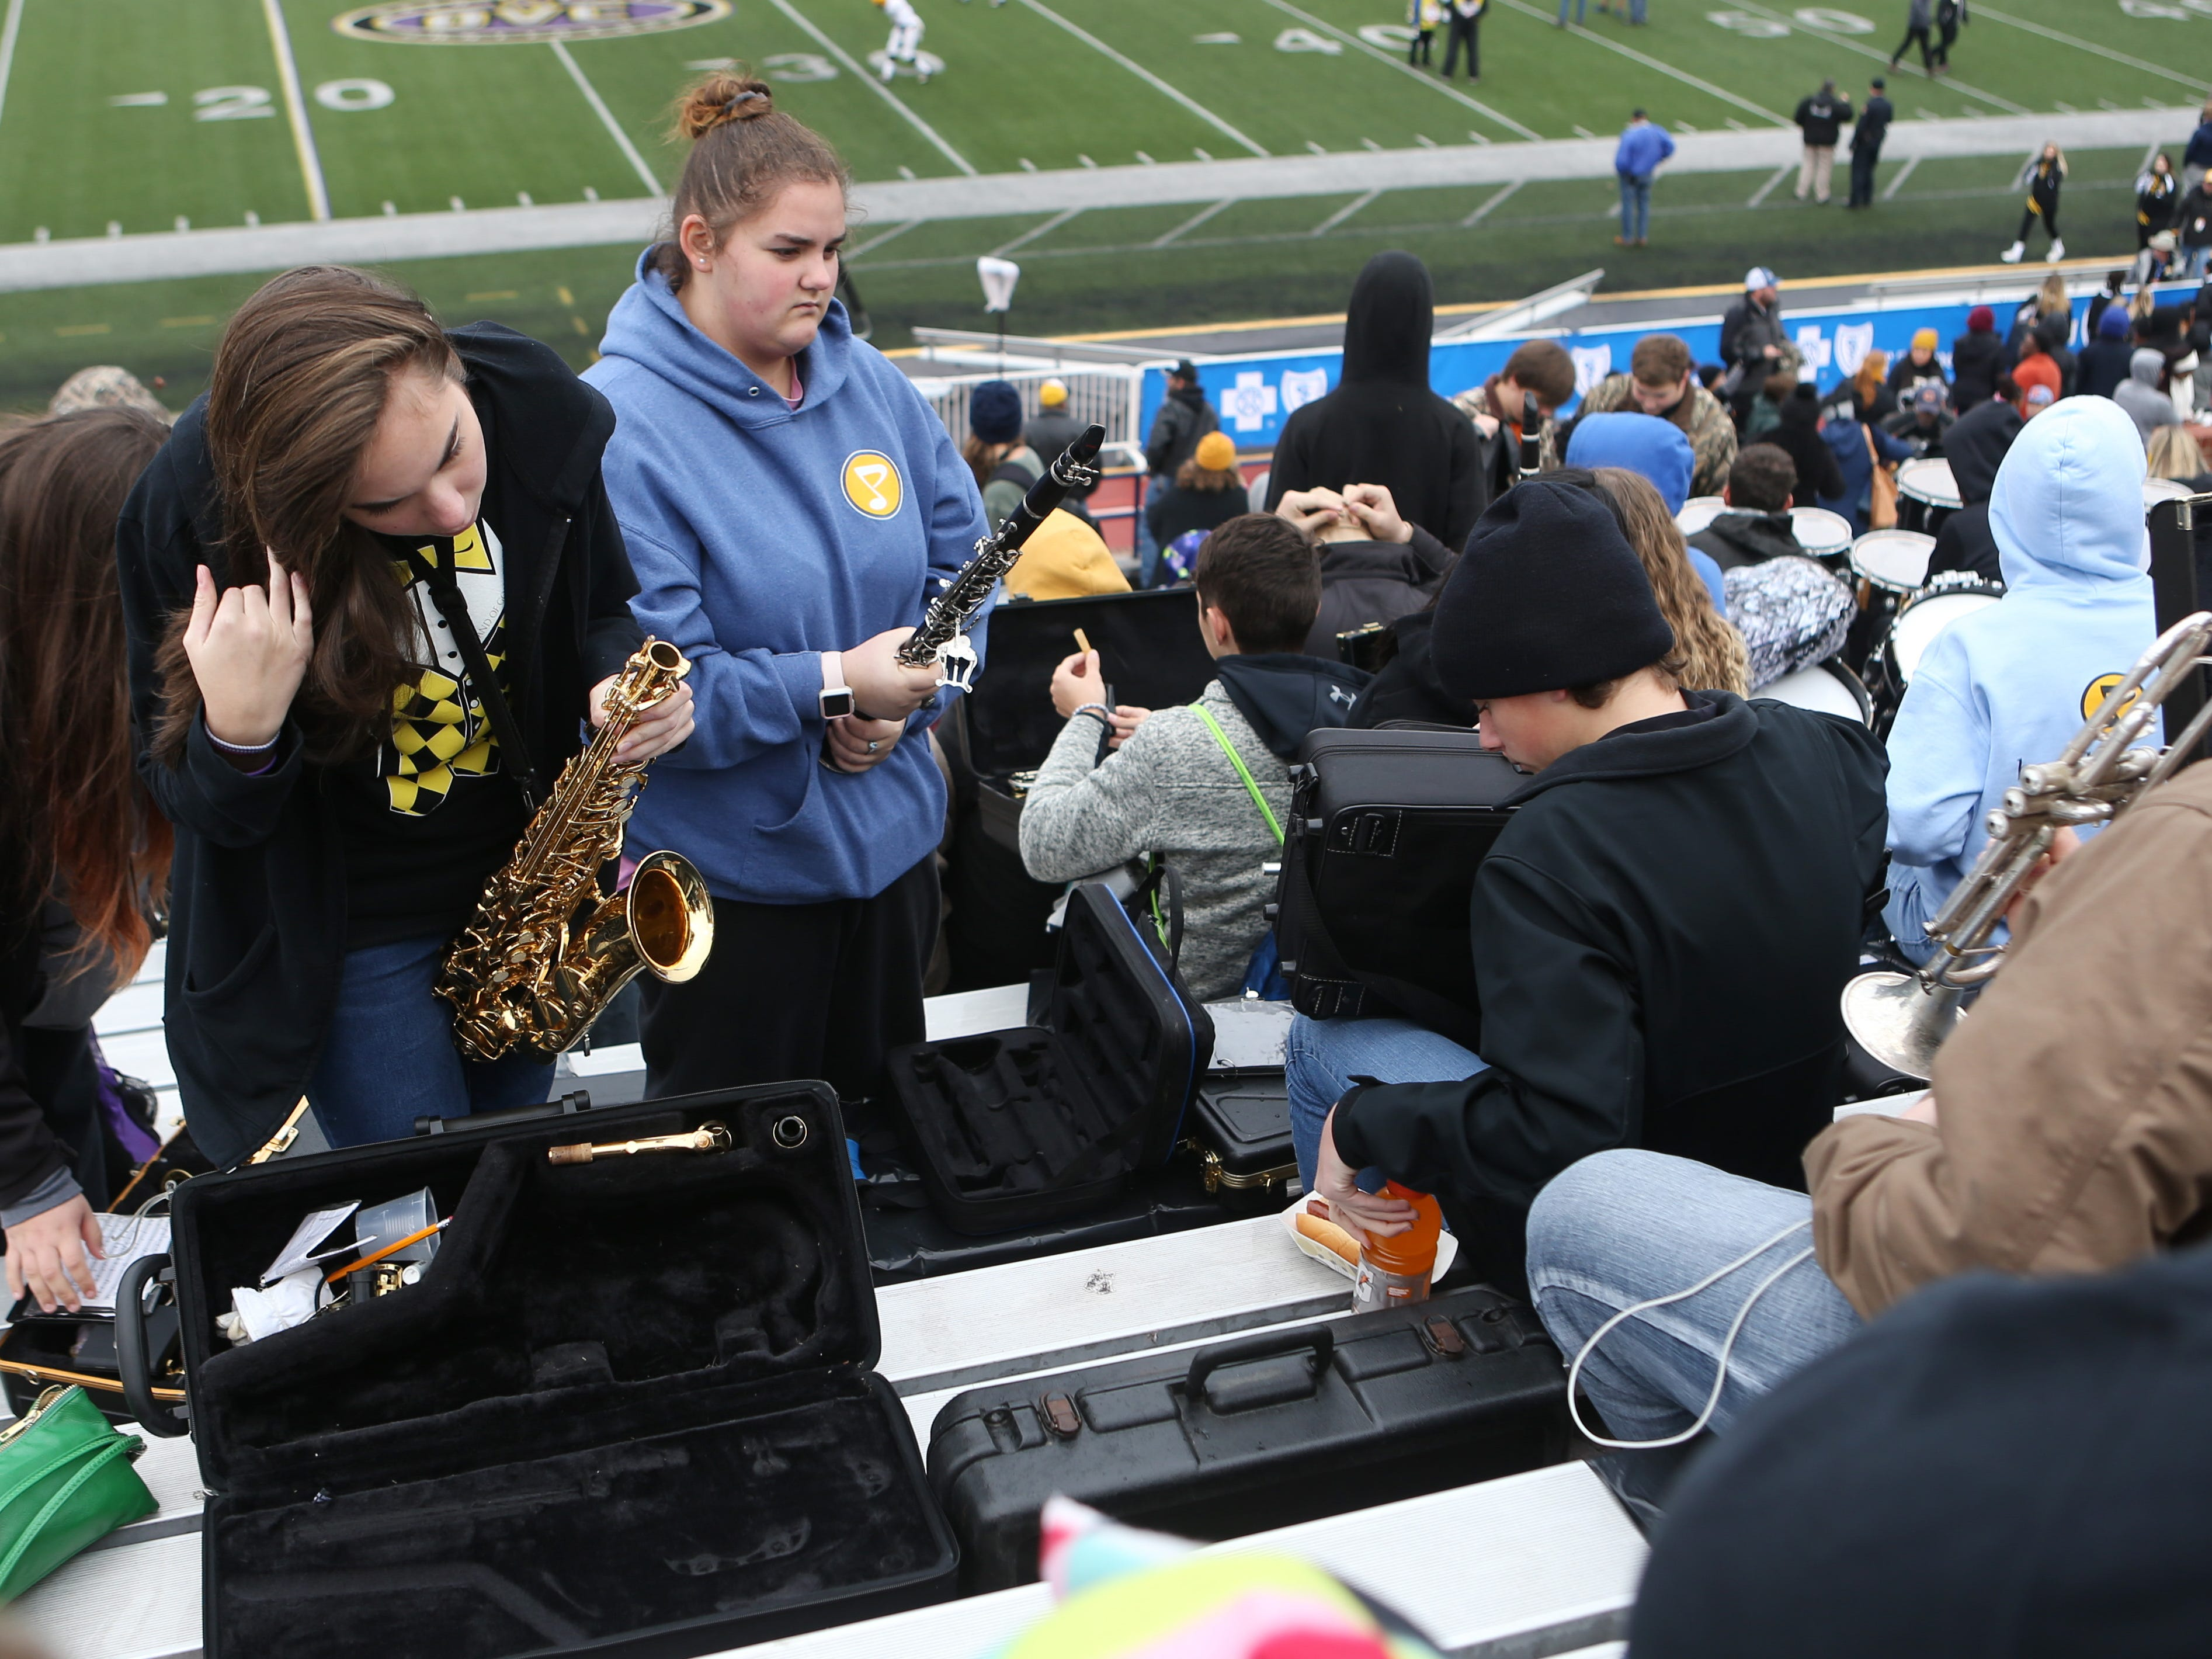 Peabody band members set up before the Class 2A BlueCross Bowl state championship at Tennessee Tech's Tucker Stadium in Cookeville, Tenn., on Thursday, Nov. 29, 2018.